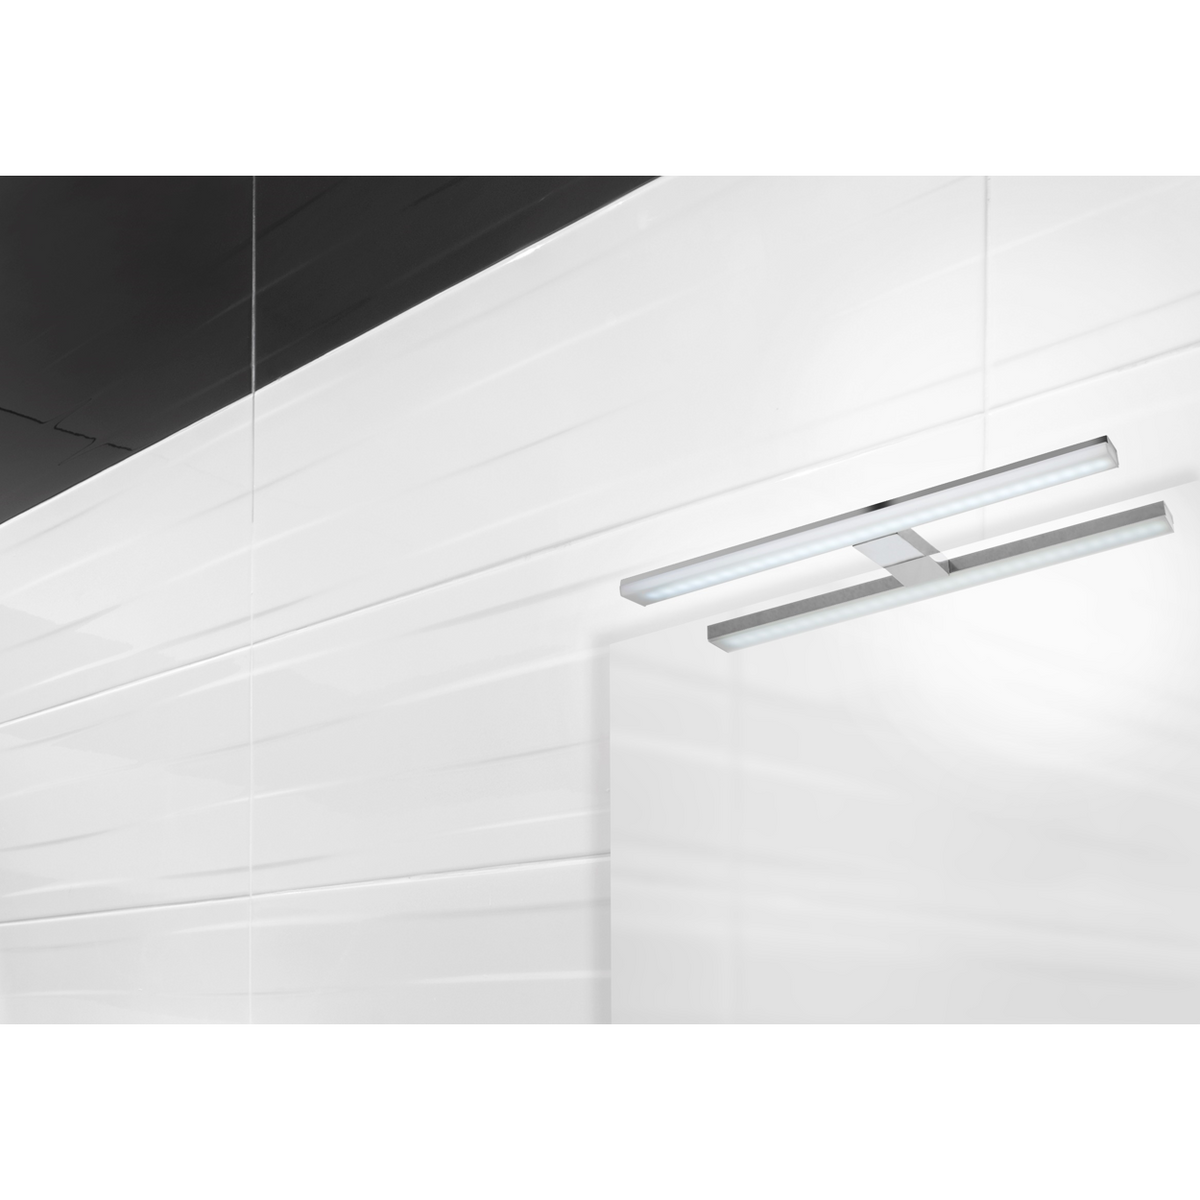 Applique led SOLAR 12W 61 cm chromé